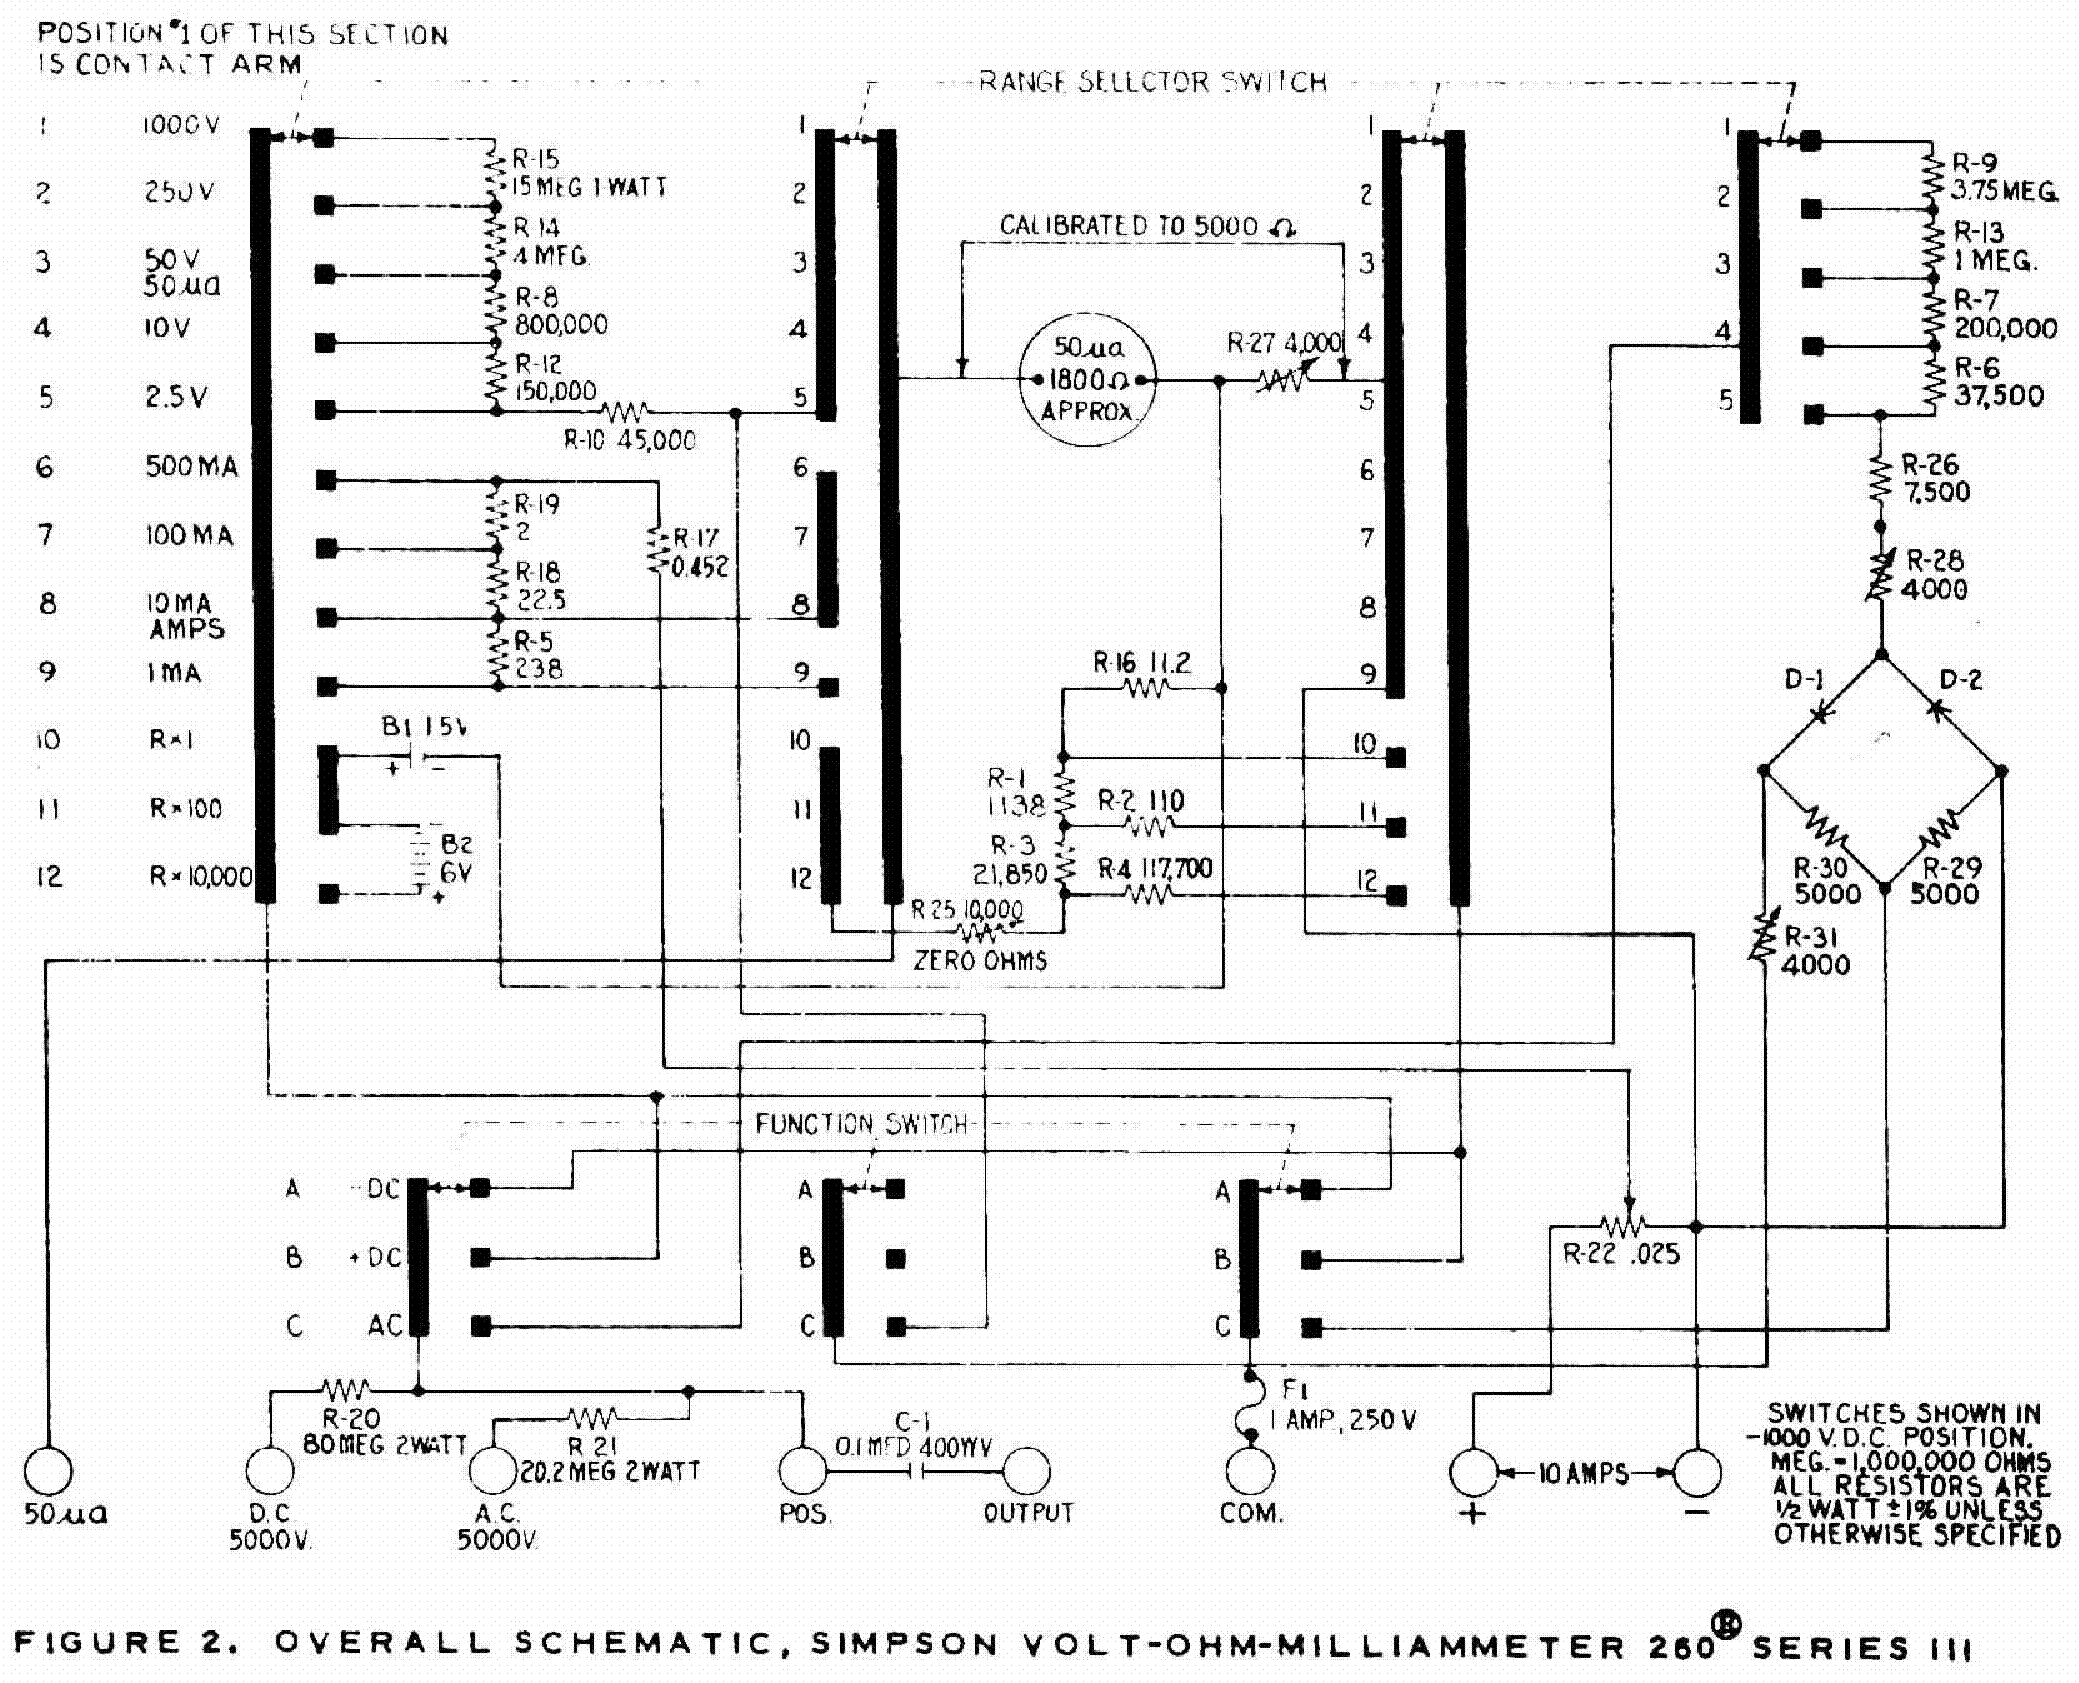 Multimeter Schematic Diagram Auto Electrical Wiring Diagrams For A Simpson 260